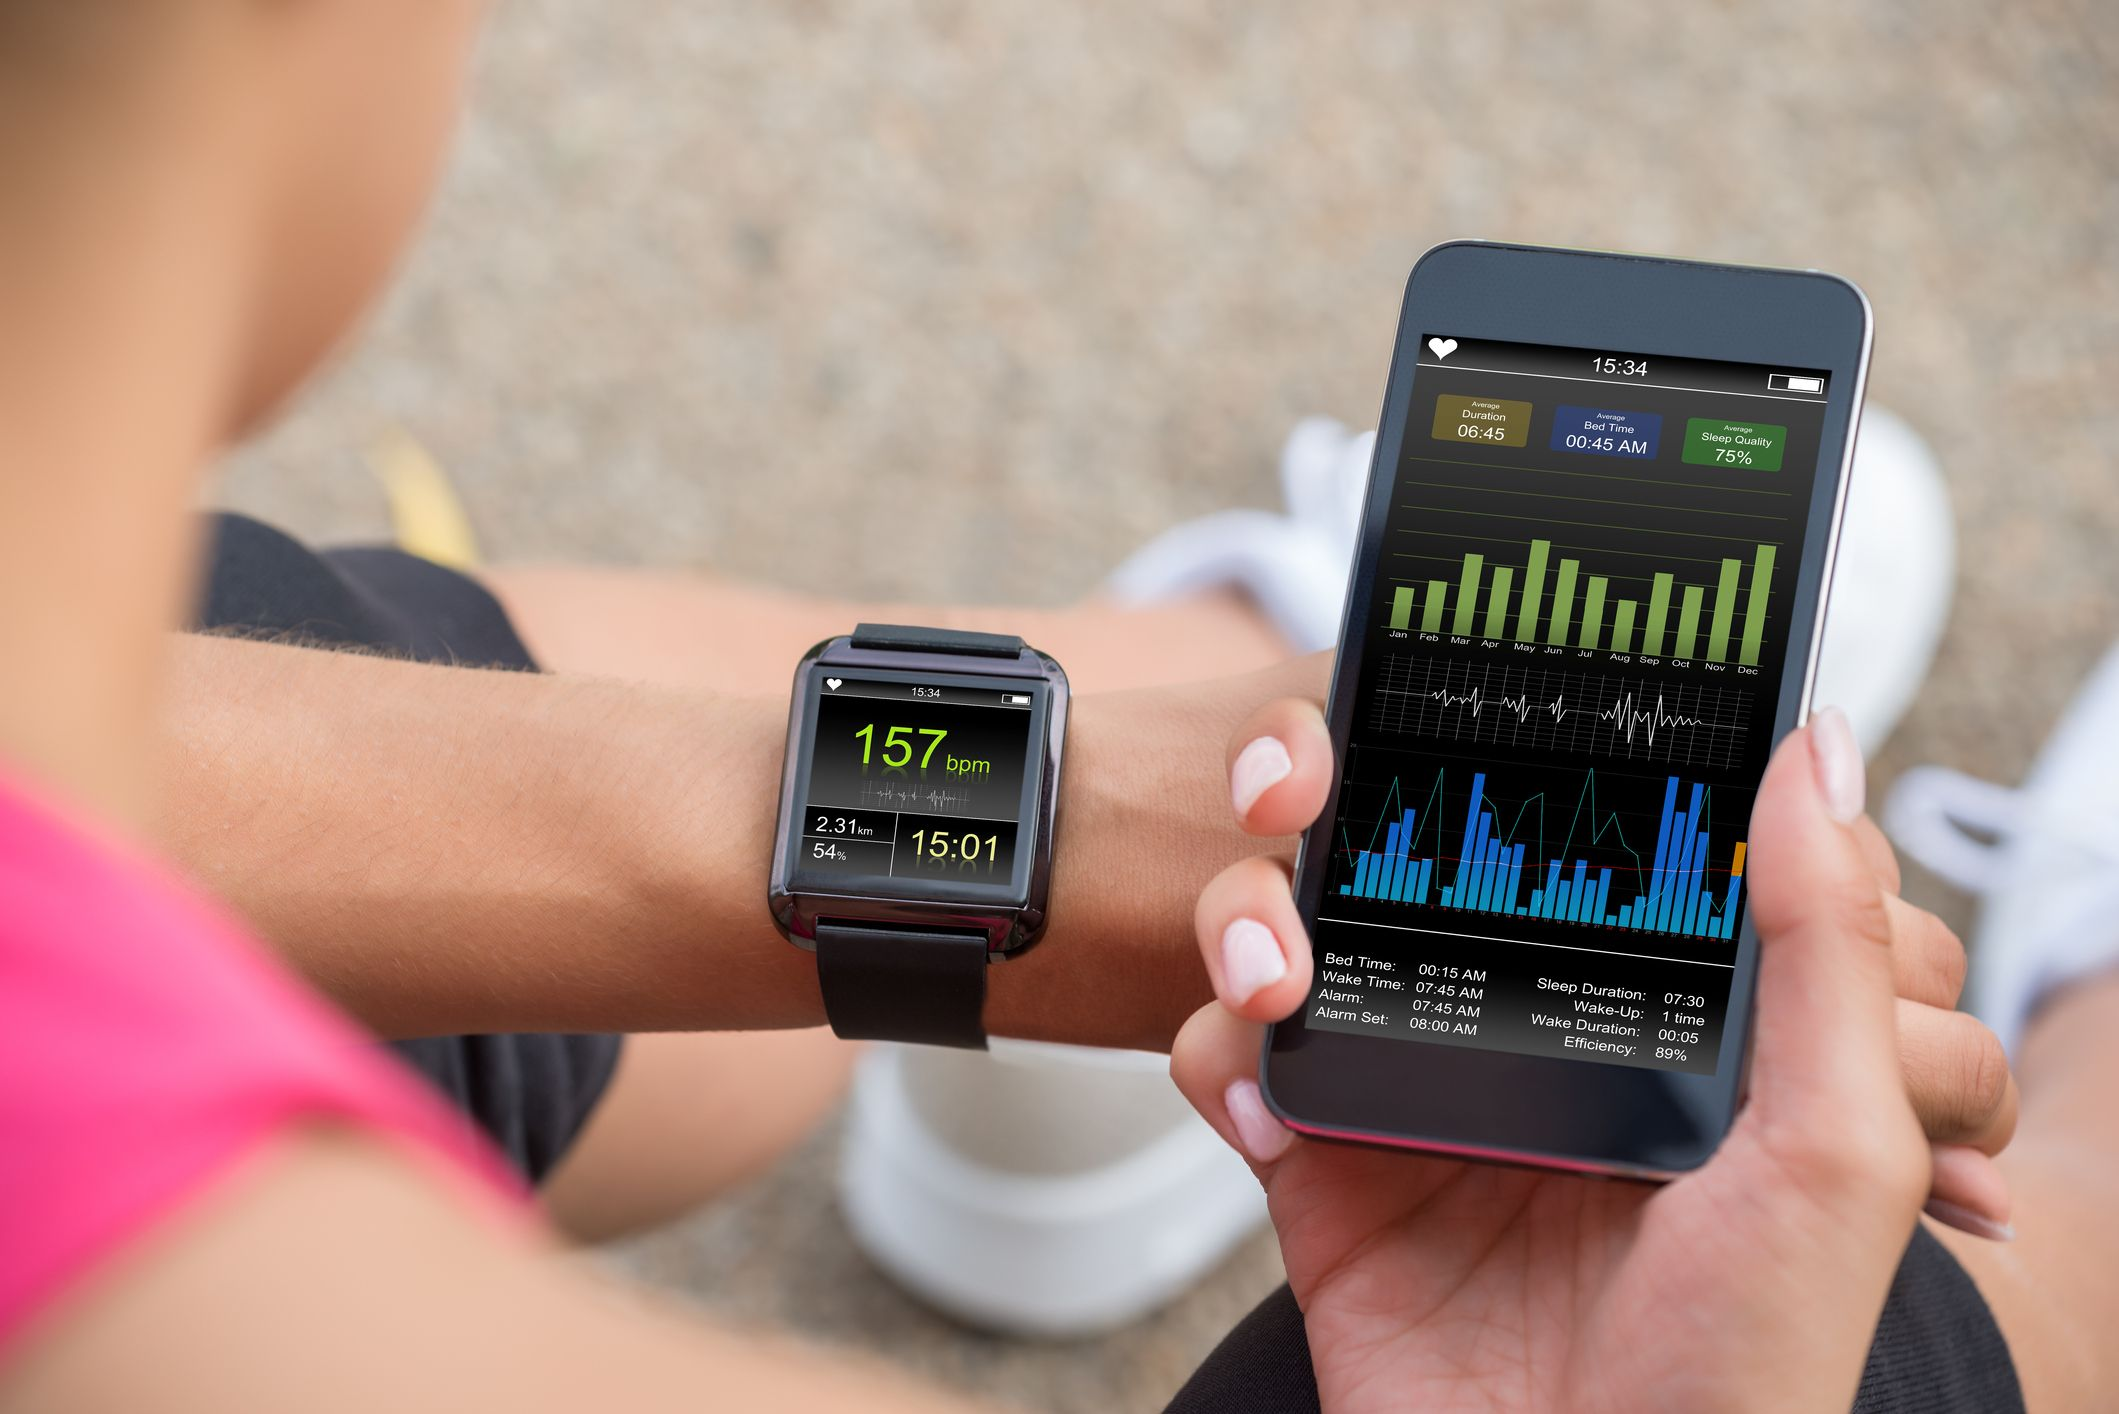 11 Best Weight Loss Apps for 2019 and 2020, According to Dietitians and Personal Trainers